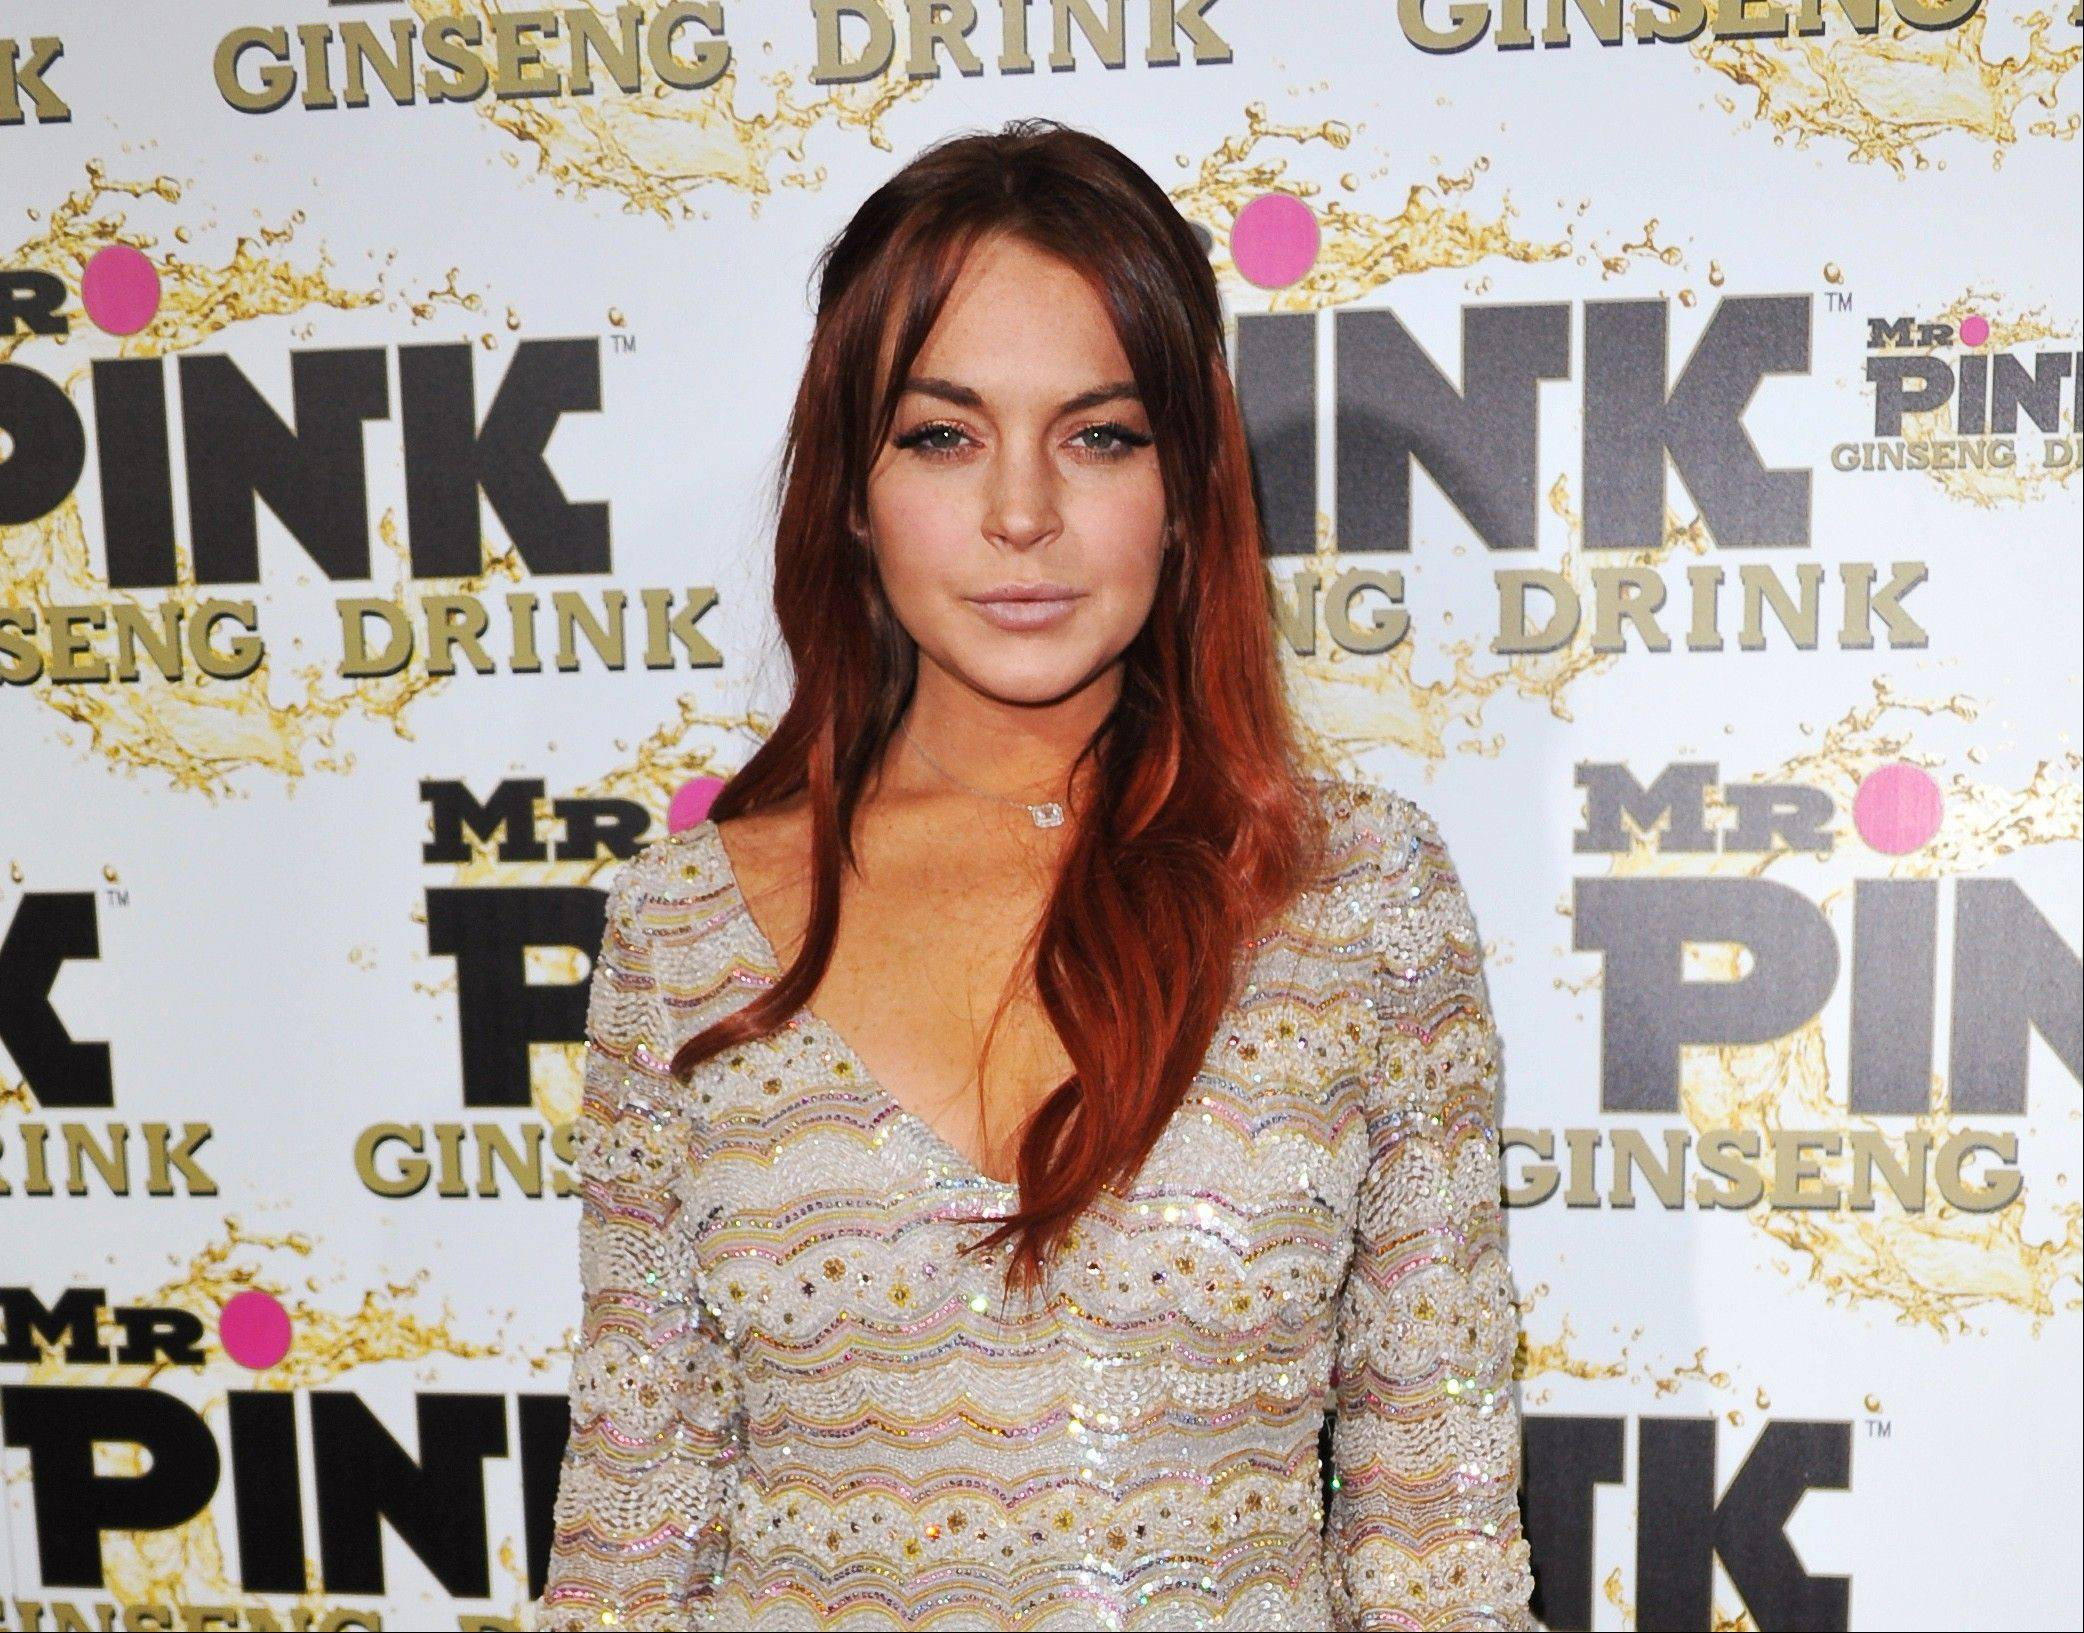 Lindsay Lohan's misdemeanor case is due to be called for arraignment in Los Angeles on Tuesday.